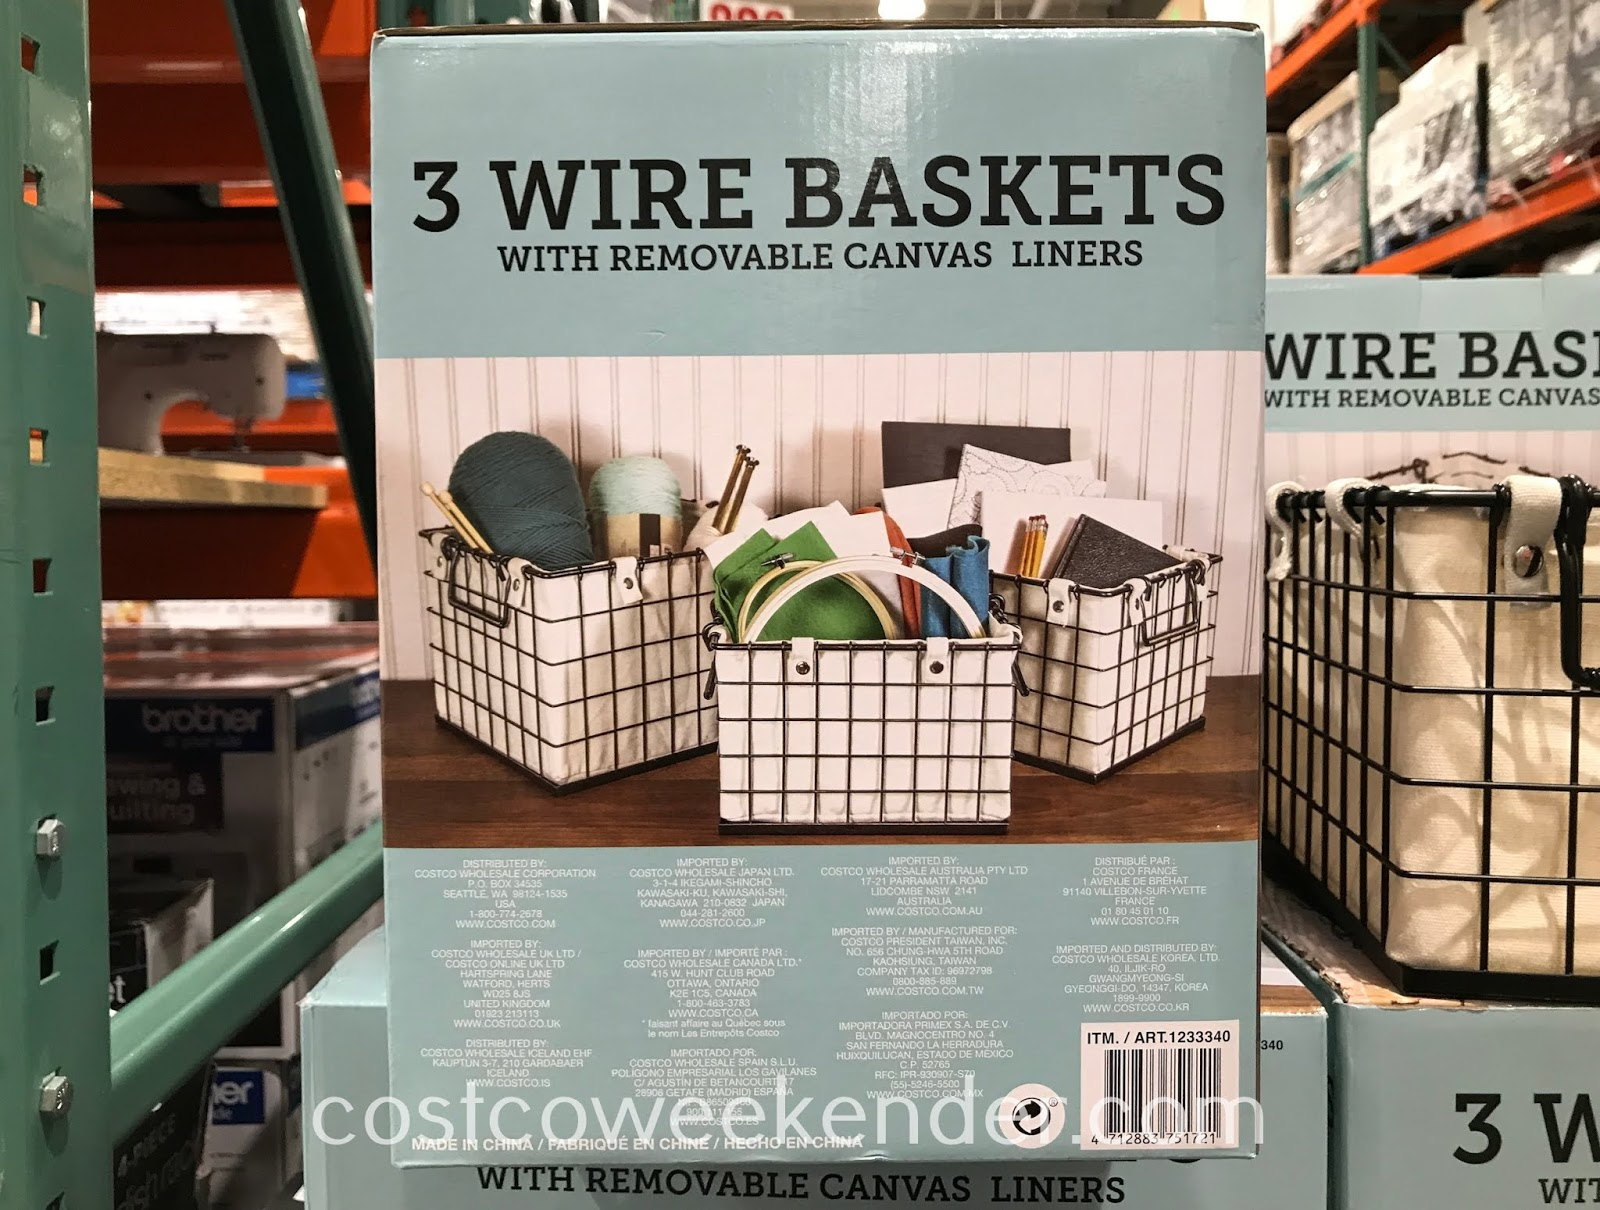 Costco 1233340 - Giftburg 3 Wire Baskets: great for storage